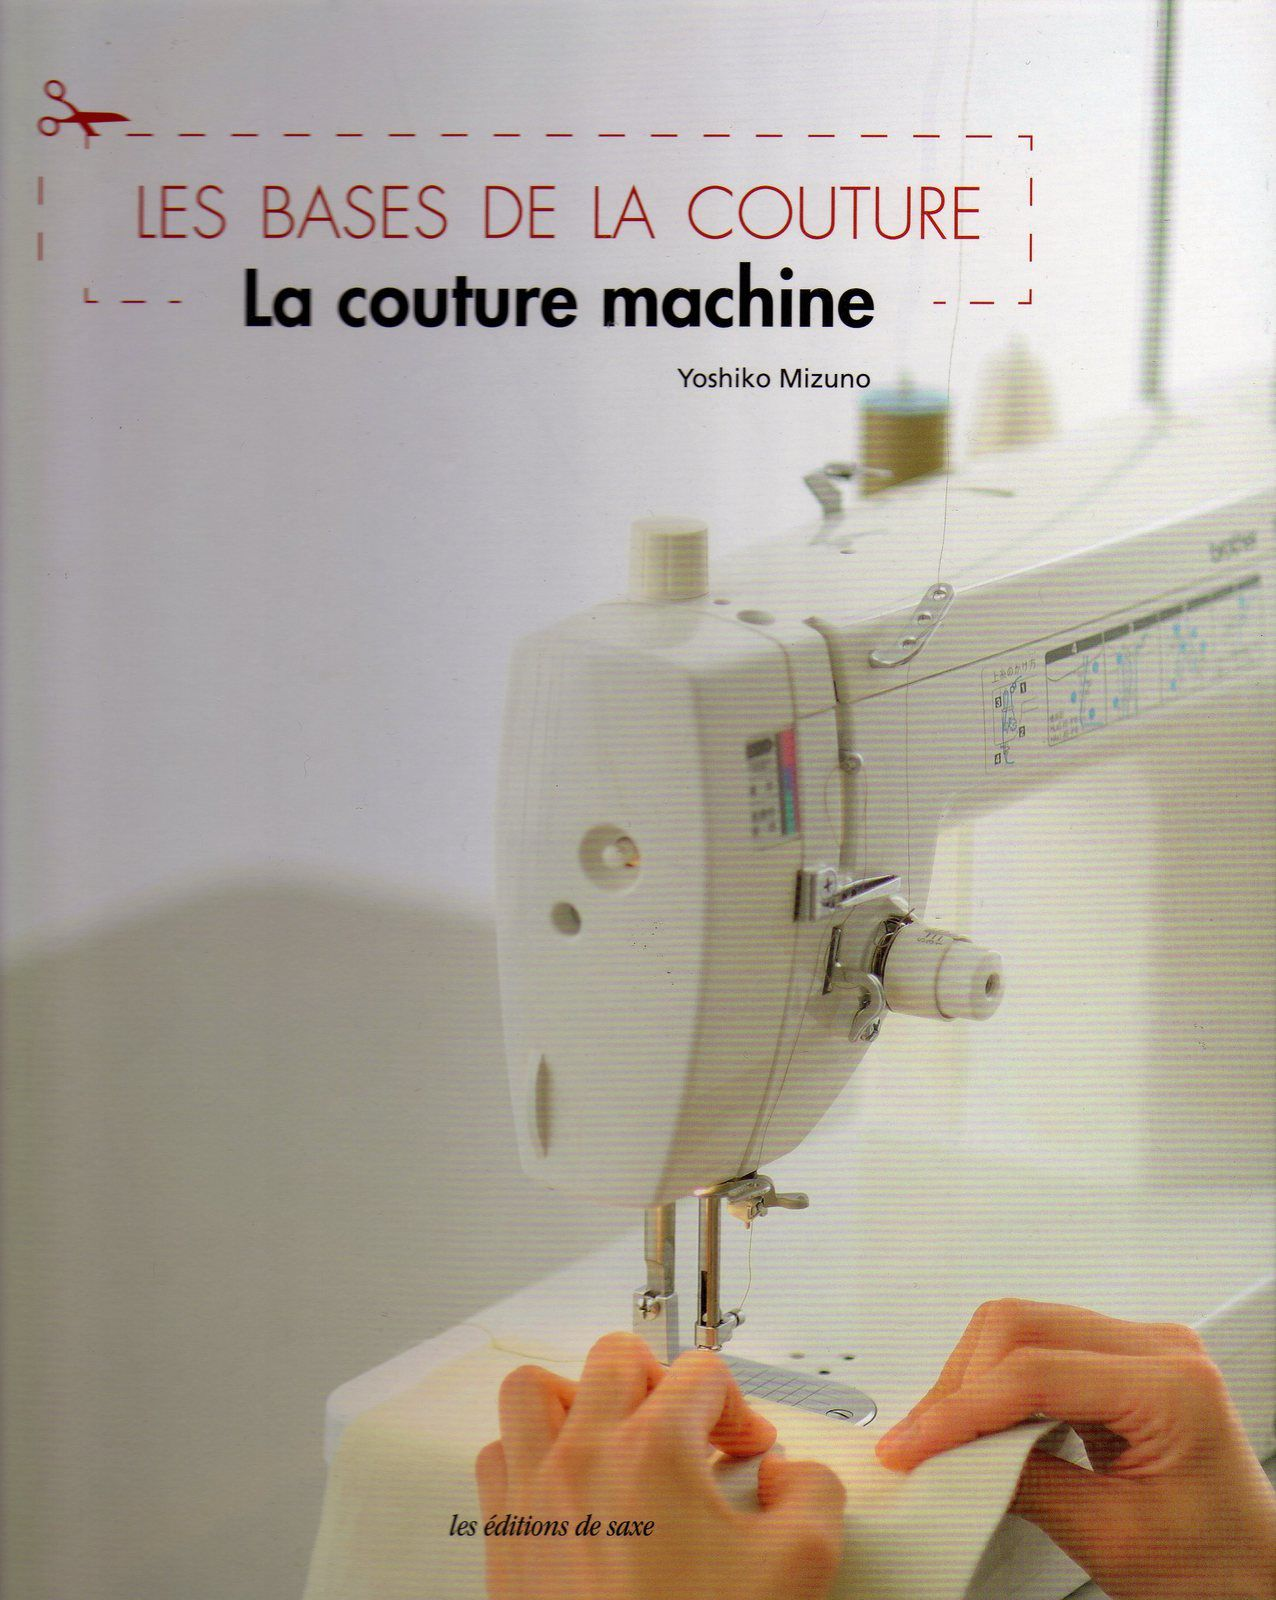 Bases de la couture machine